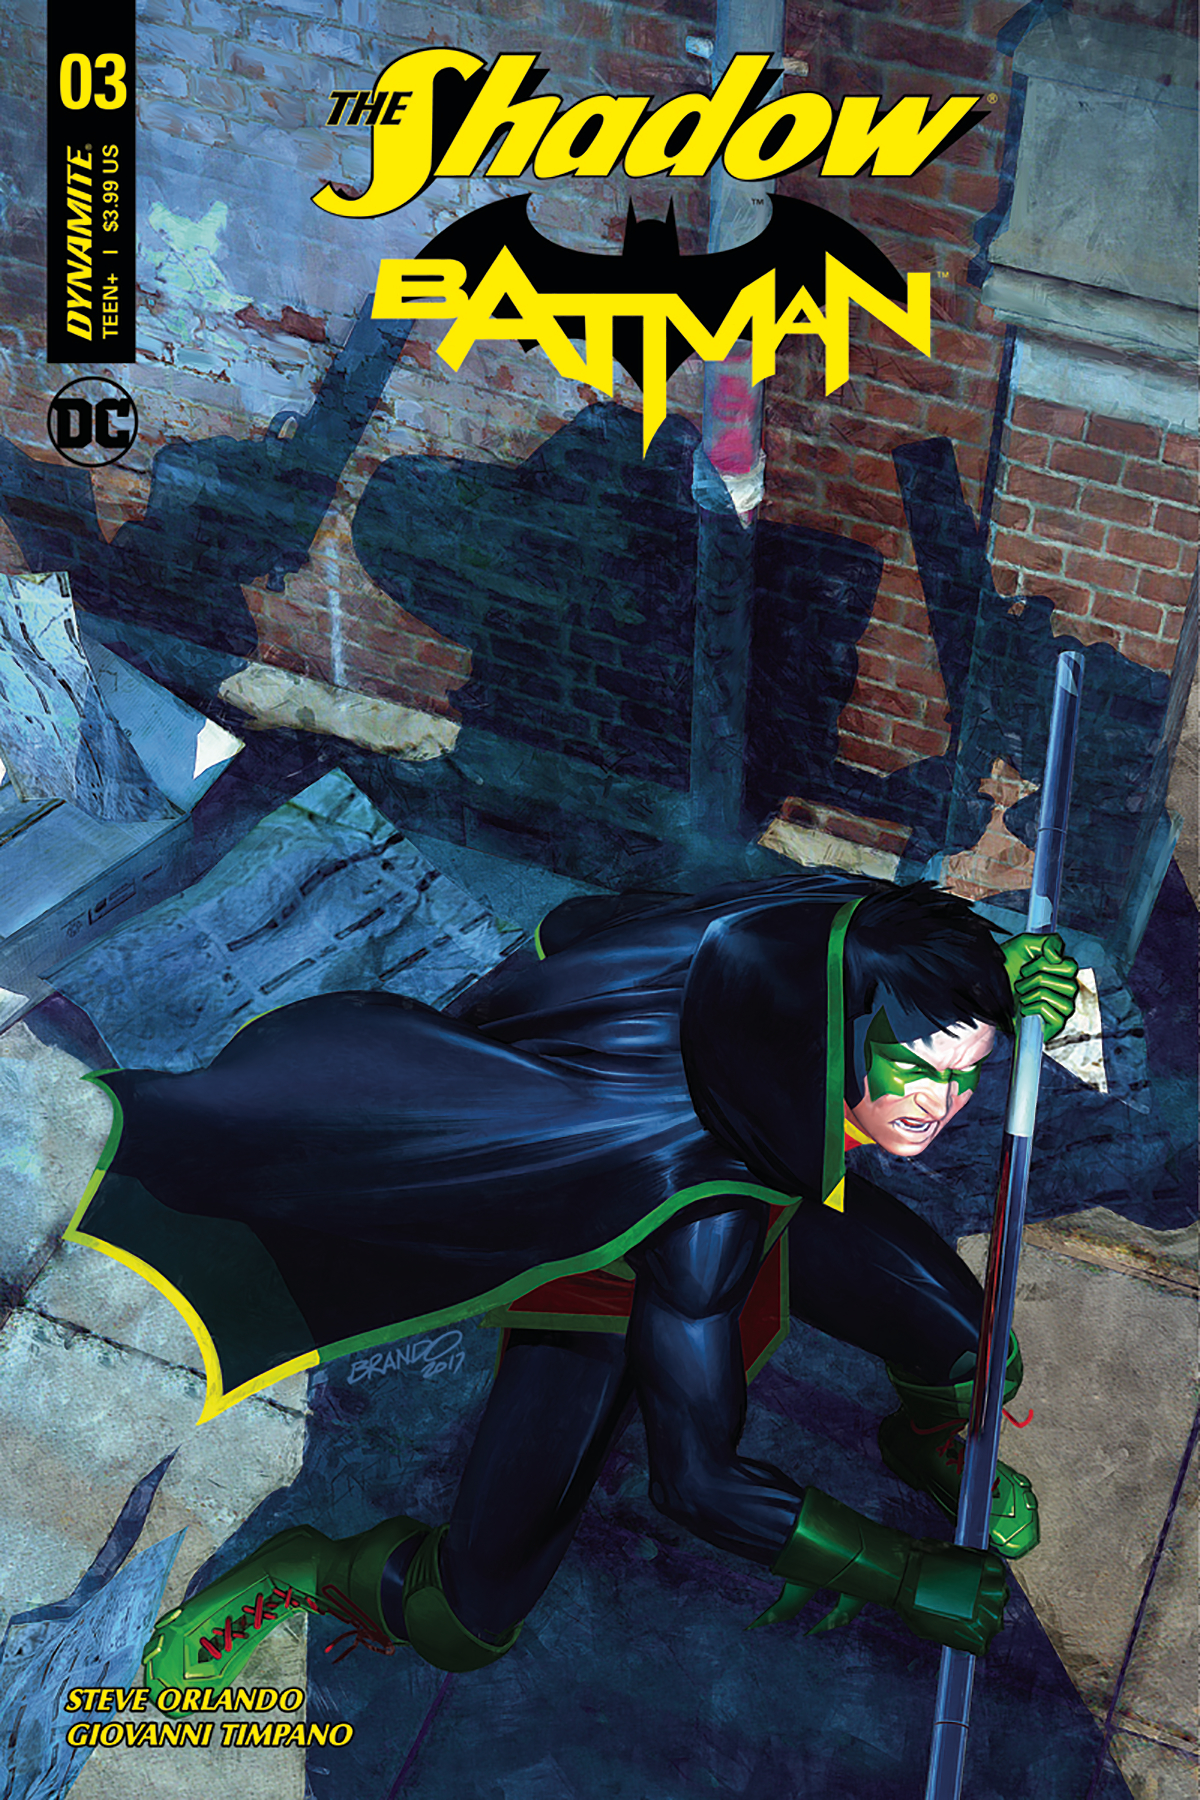 SHADOW BATMAN #3 (OF 6) CVR B PETERSON